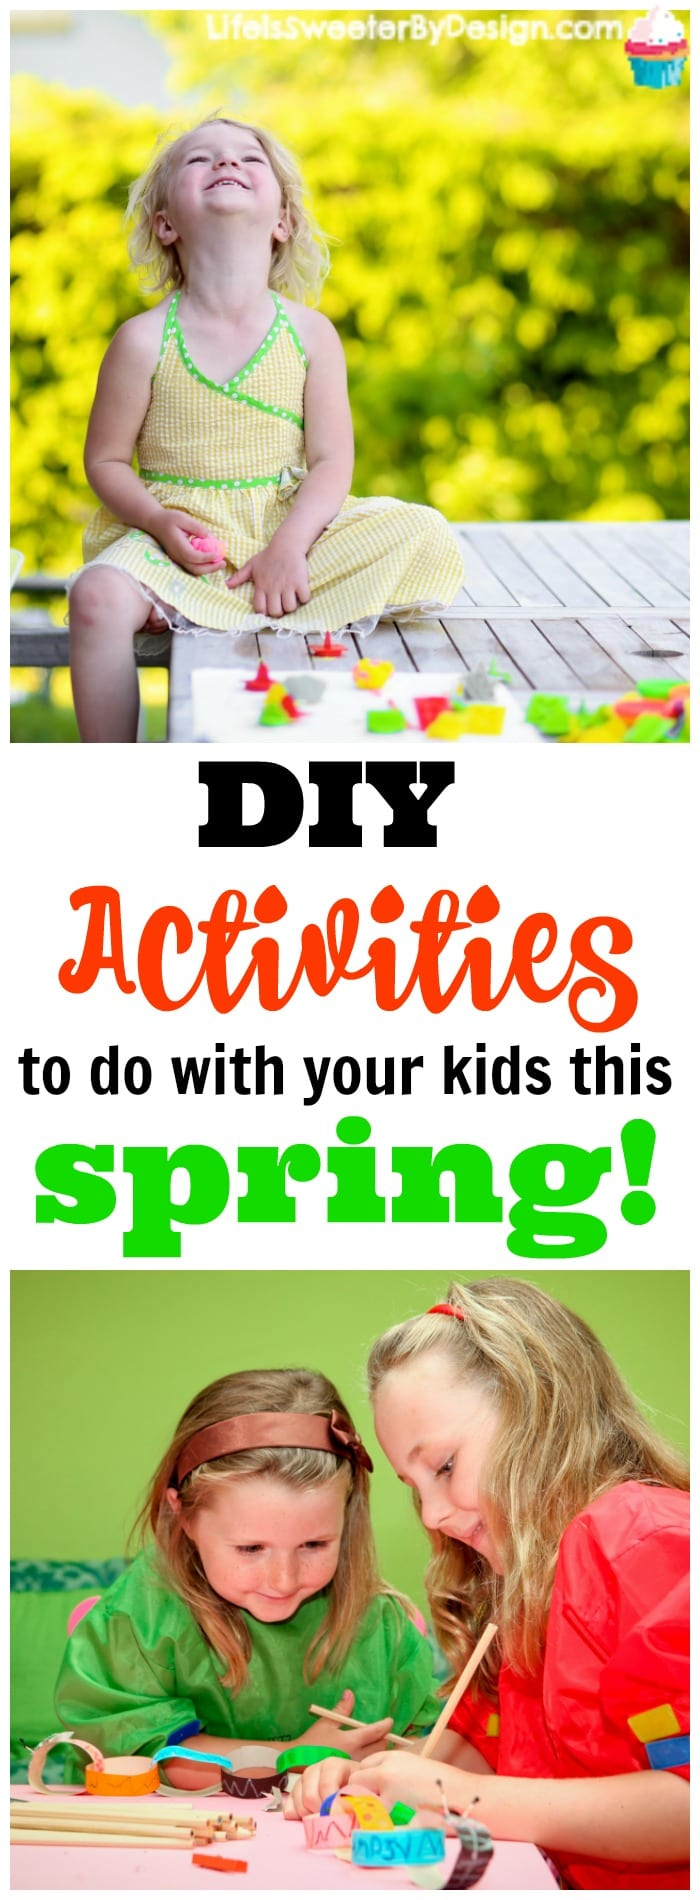 DIY activities you can do with your kids this spring!  These DIY activities are easy and fun to do as a family.  Simple DIY games and crafts your kids will enjoy and will keep them busy!